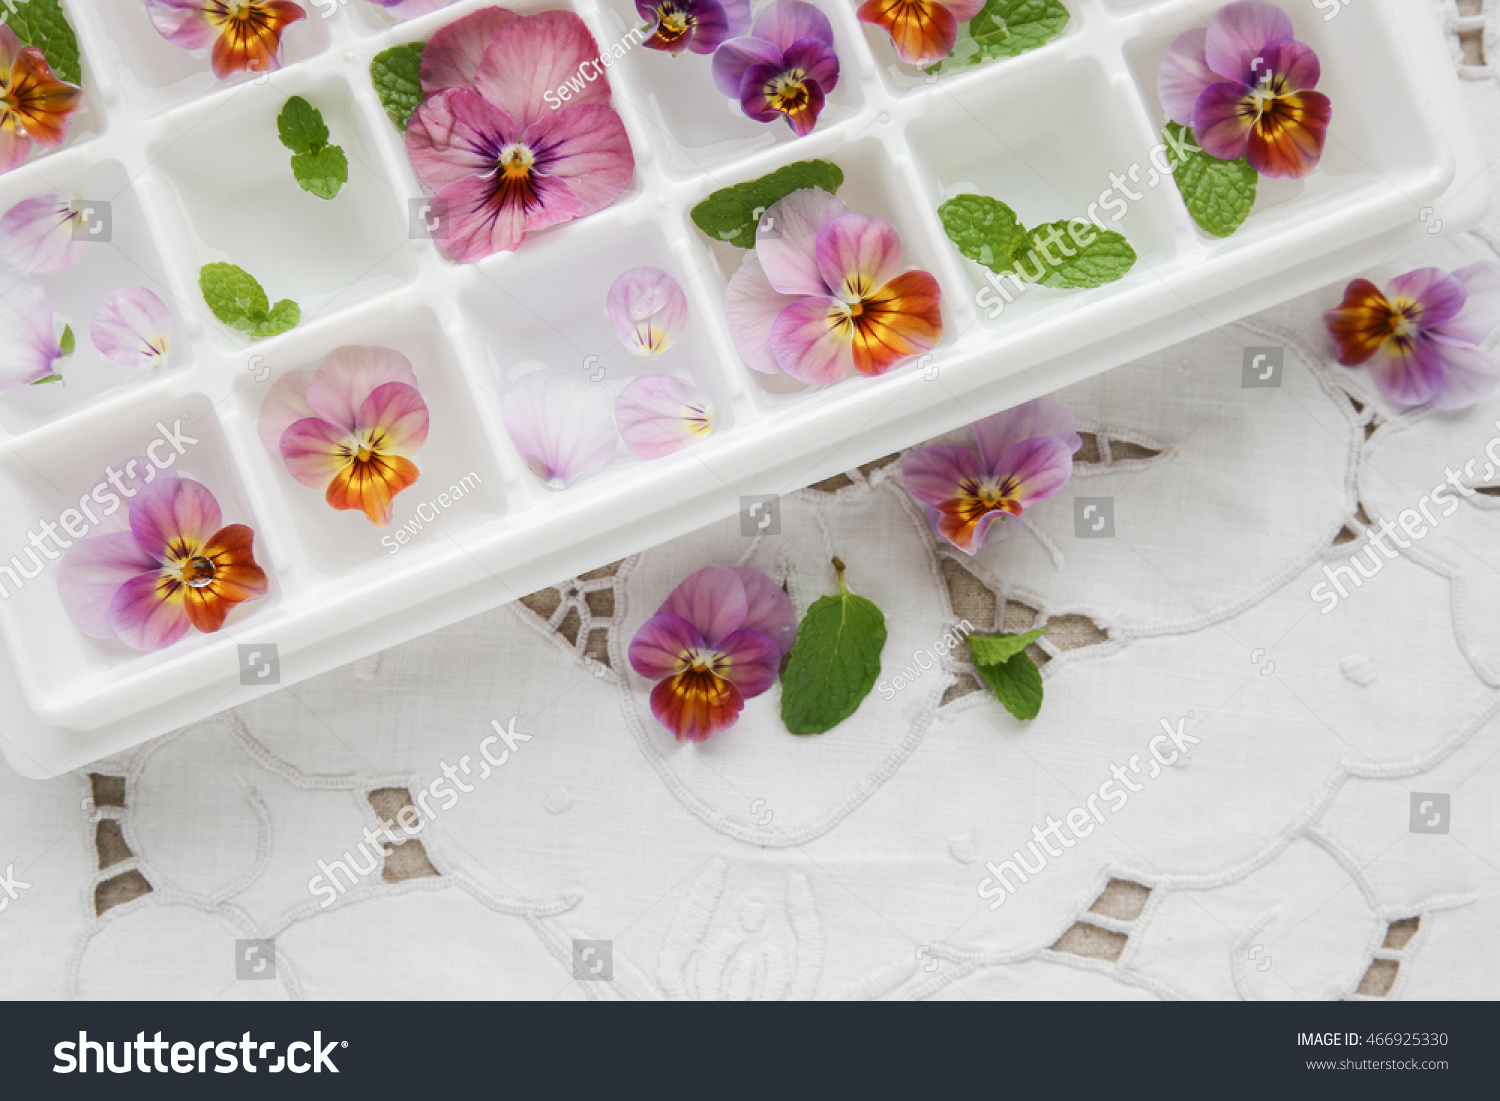 Edible flowers mint ice cubes tray stock photo 100 legal edible flowers and mint in ice cubes tray on white vintage linen background mightylinksfo